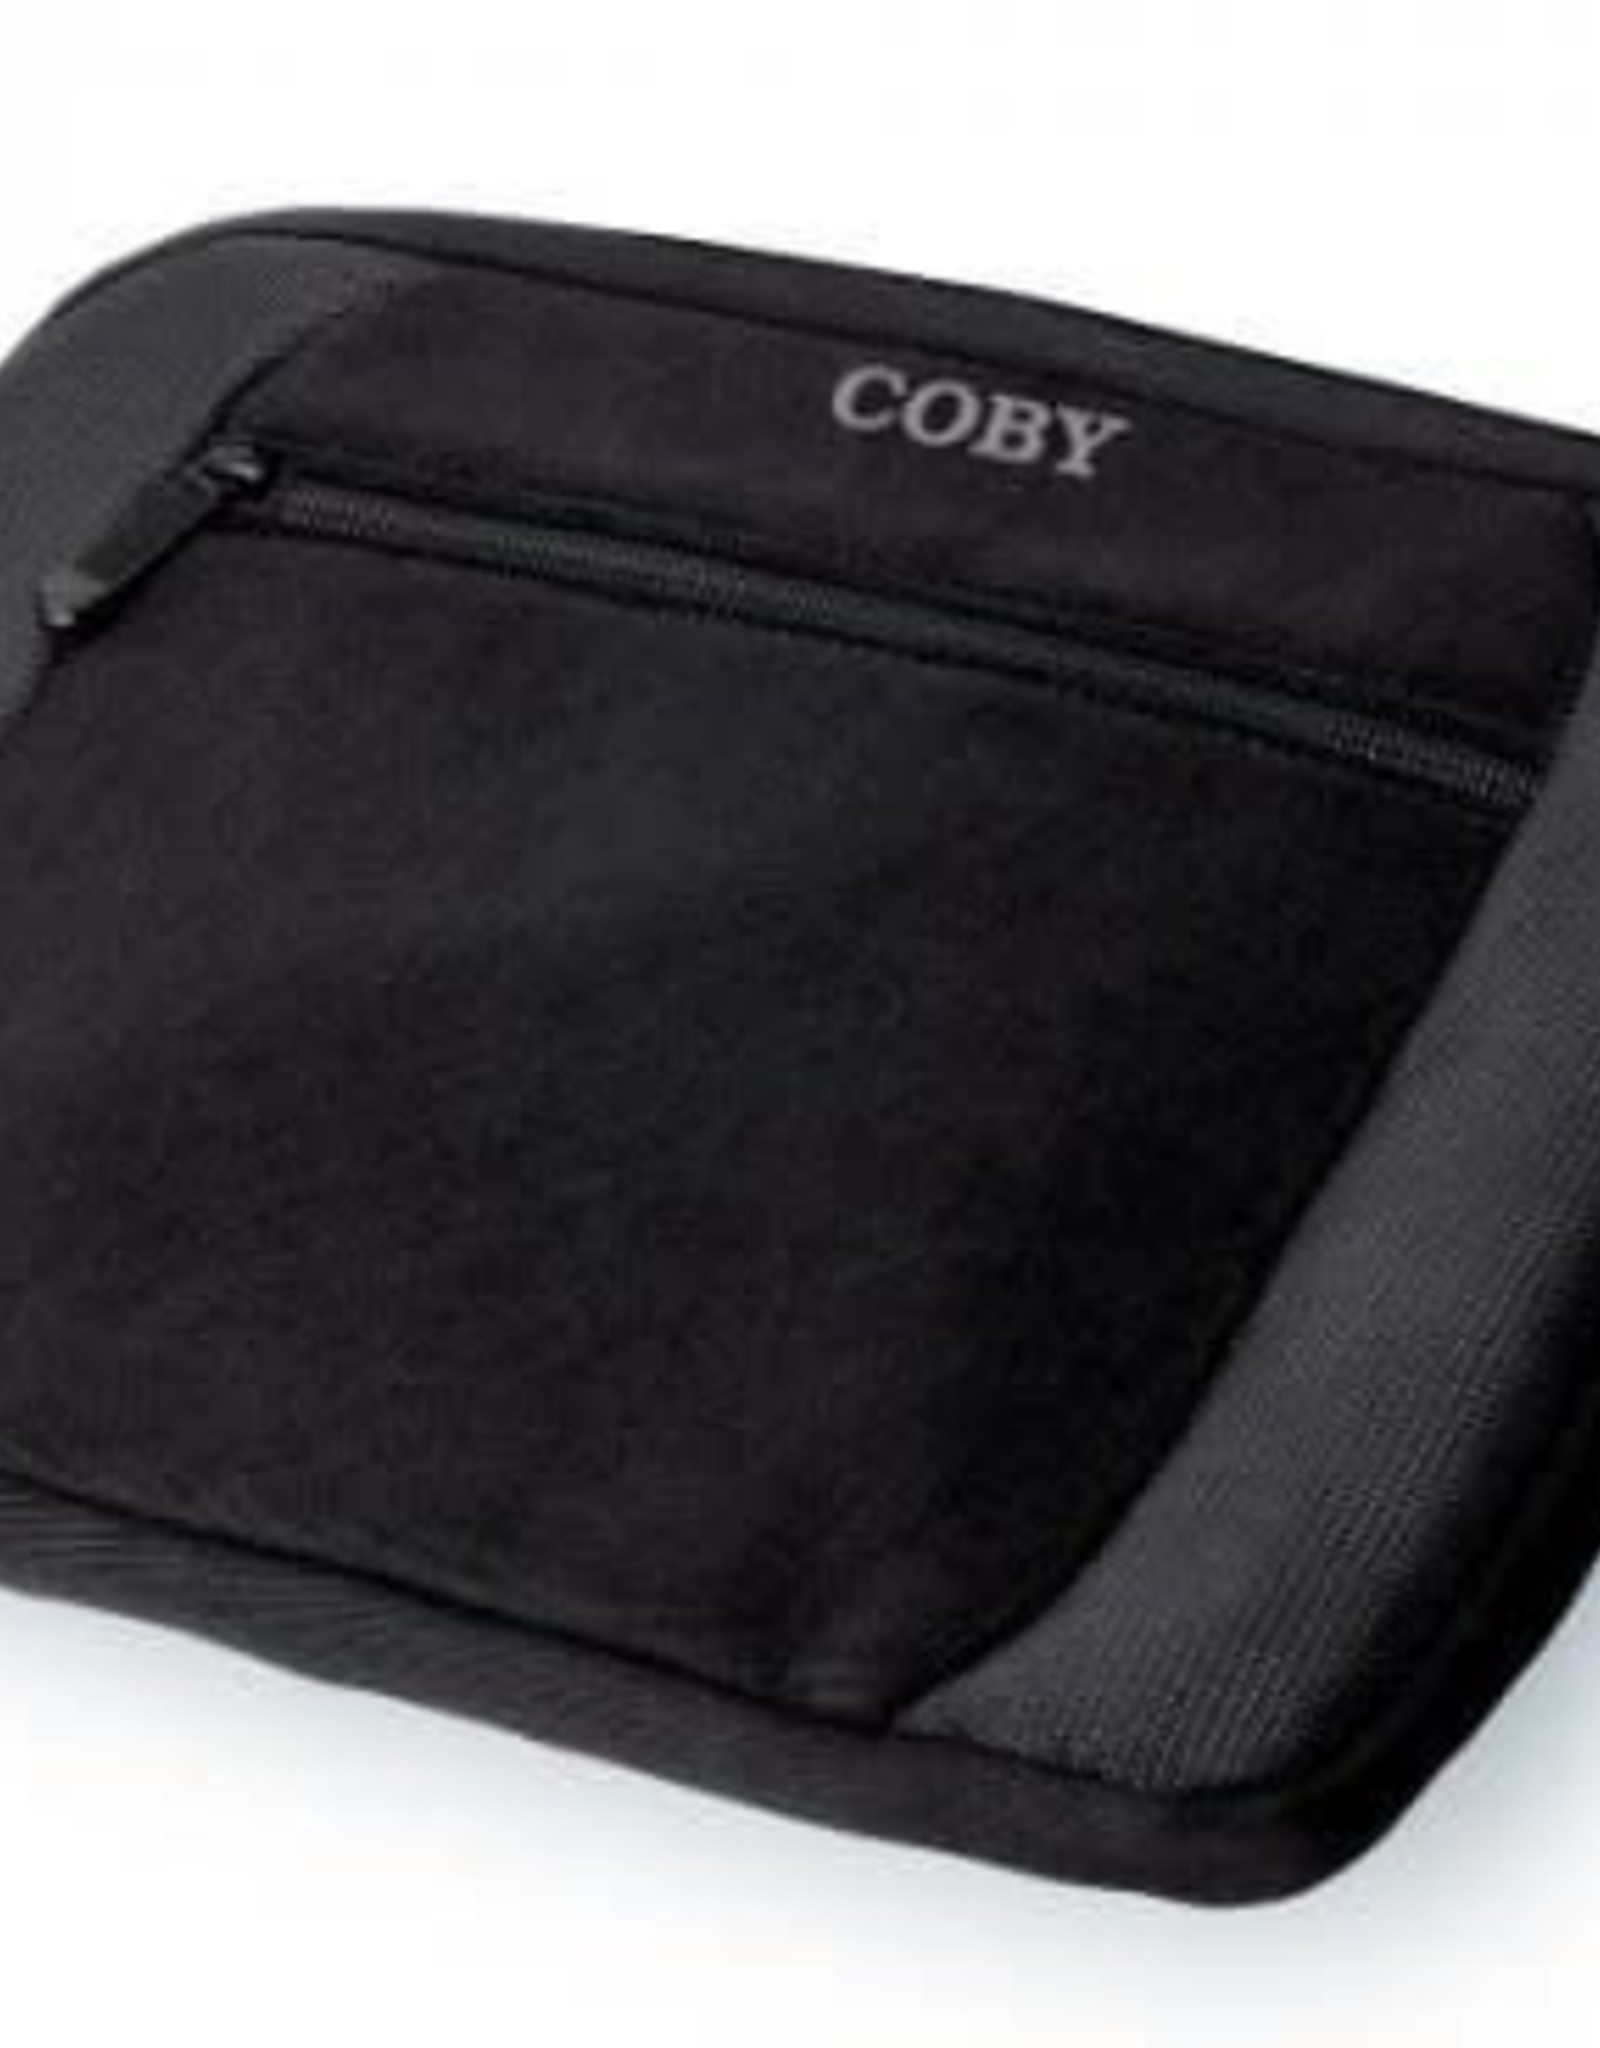 Coby Tablet Accesory Kit 8in